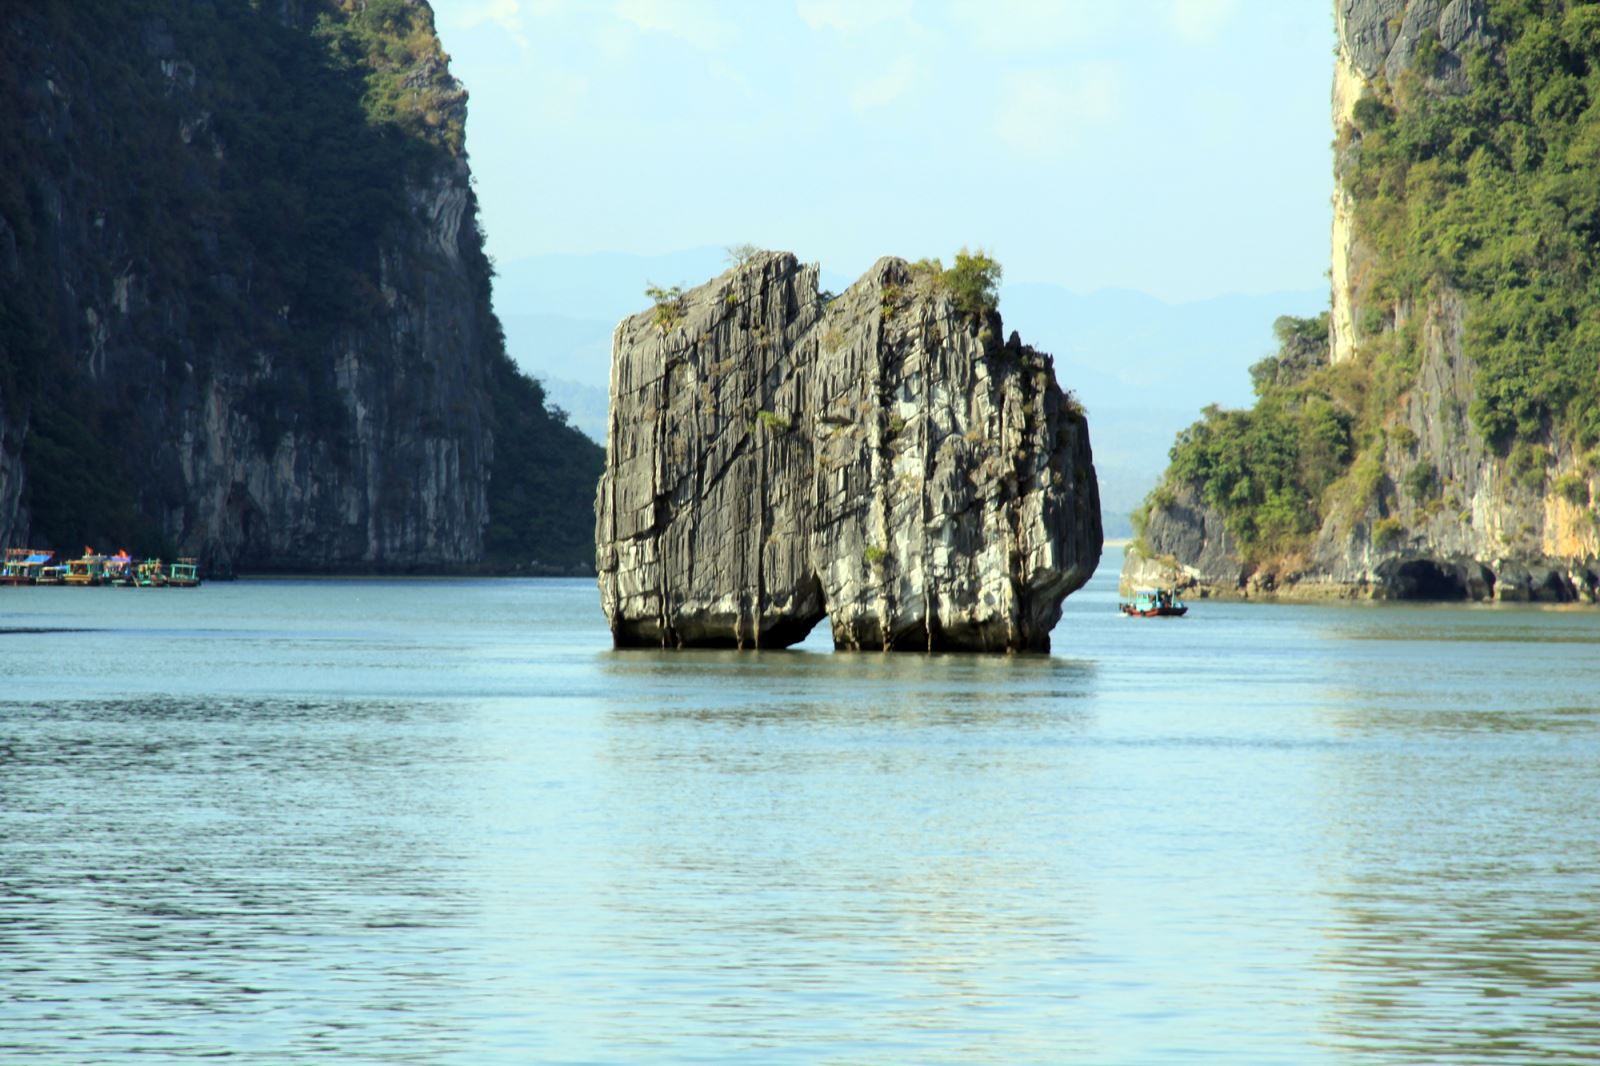 Grayline cruise passing Dinh Huong islet in Halong bay